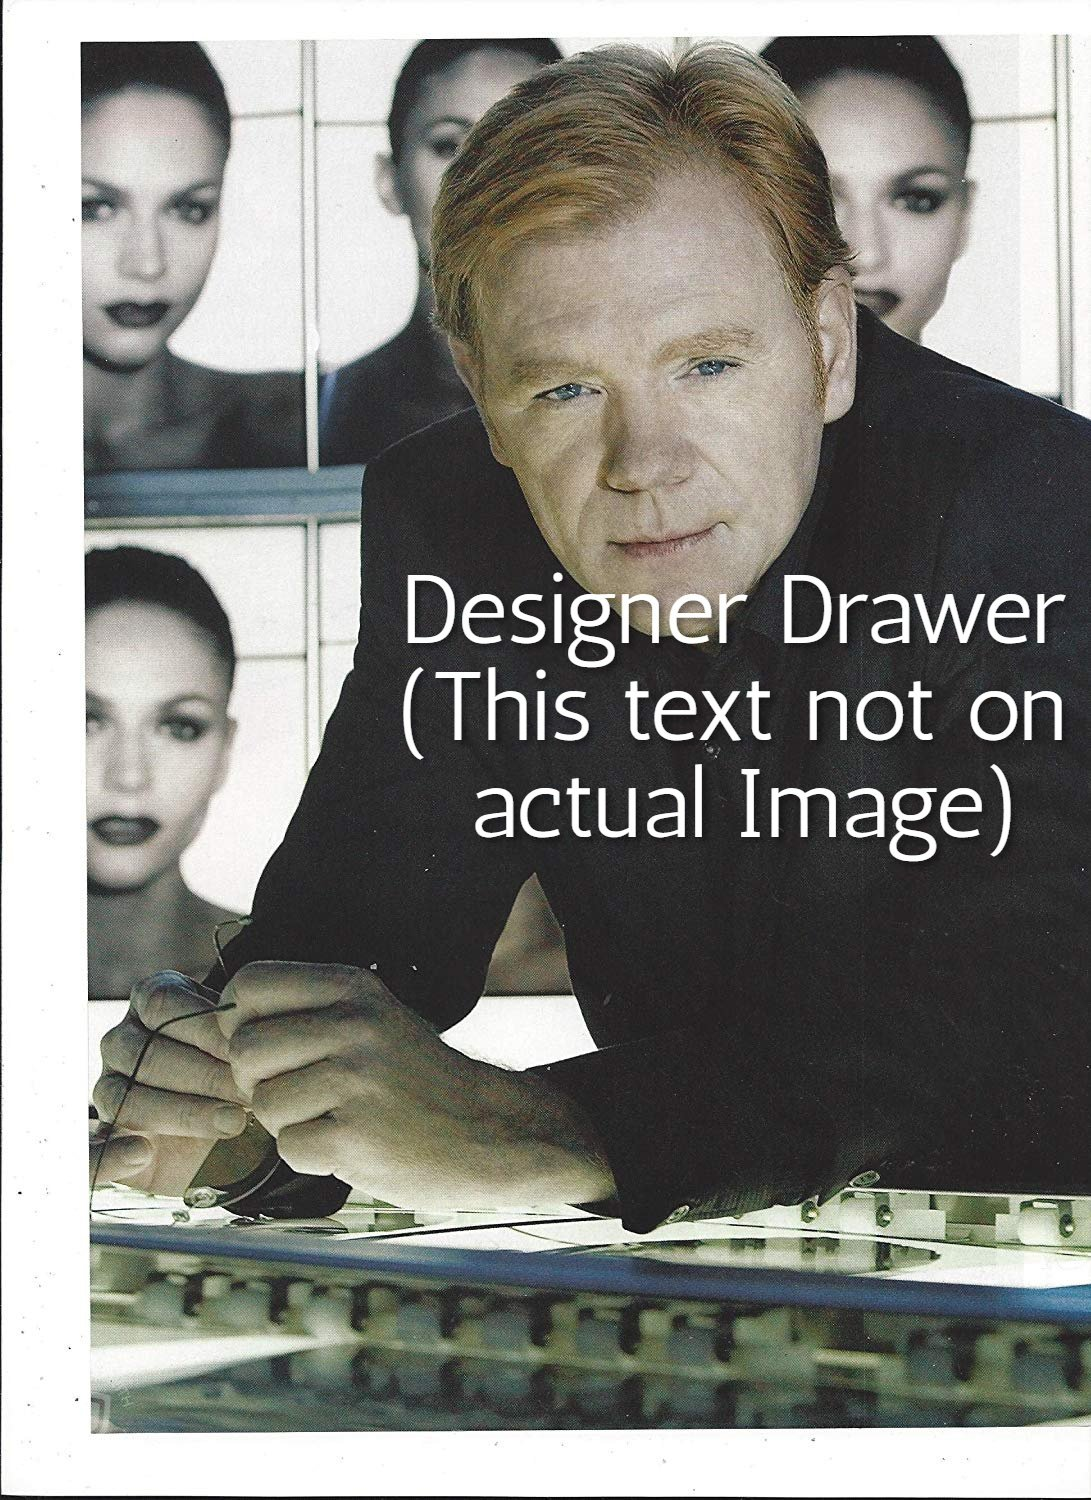 Original Magazine Photo With David Caruso In 2007